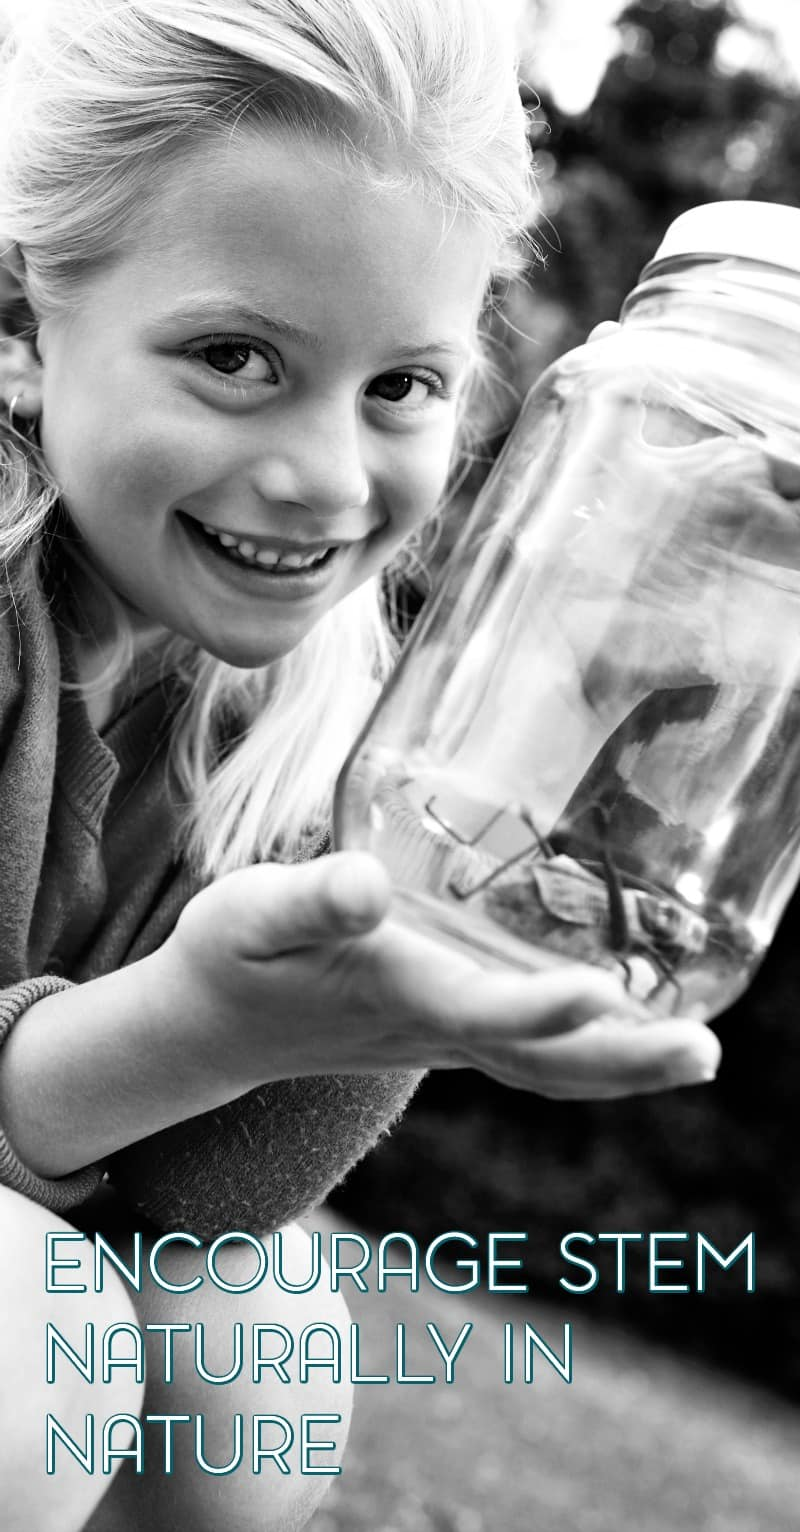 Encourage your daughter's interest in STEM by exploring nature.